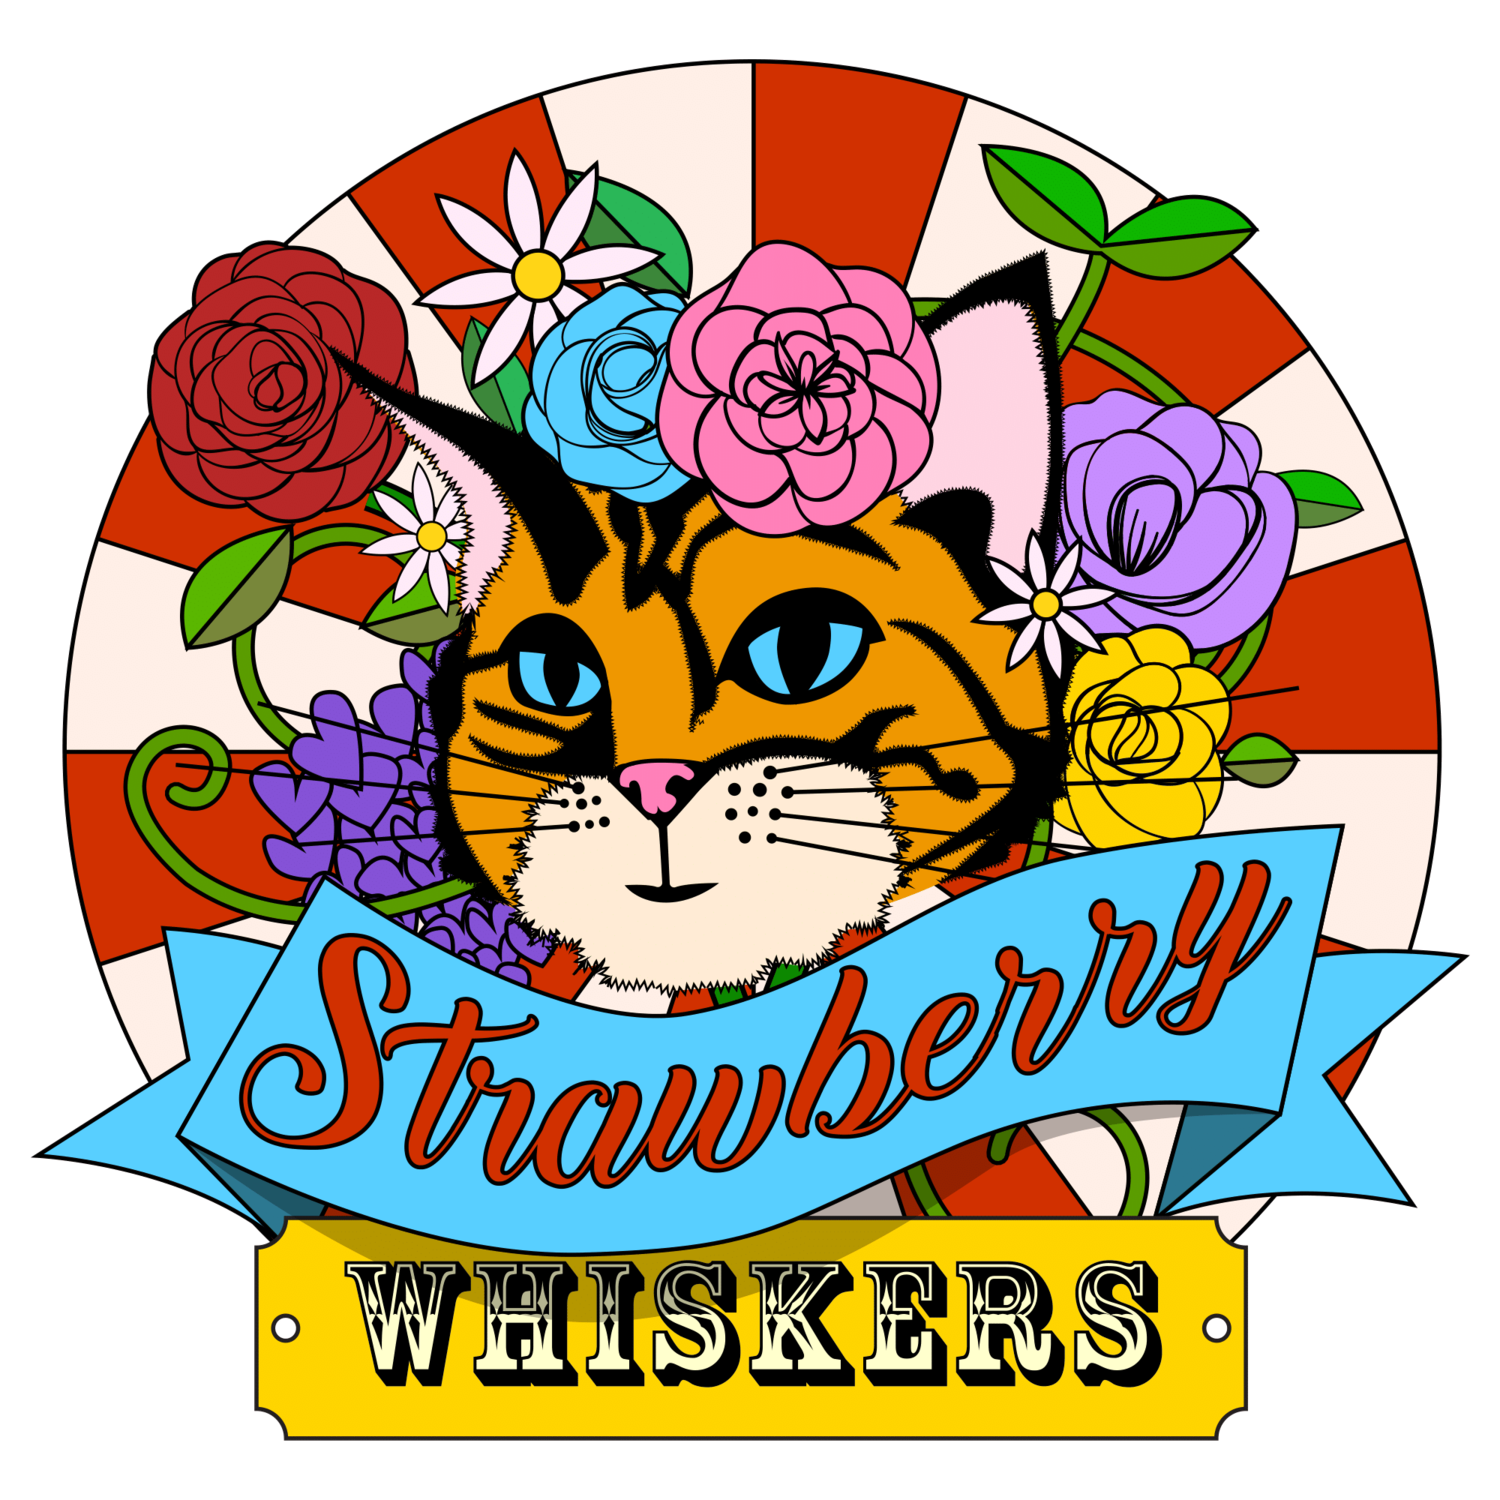 Strawberry Whiskers